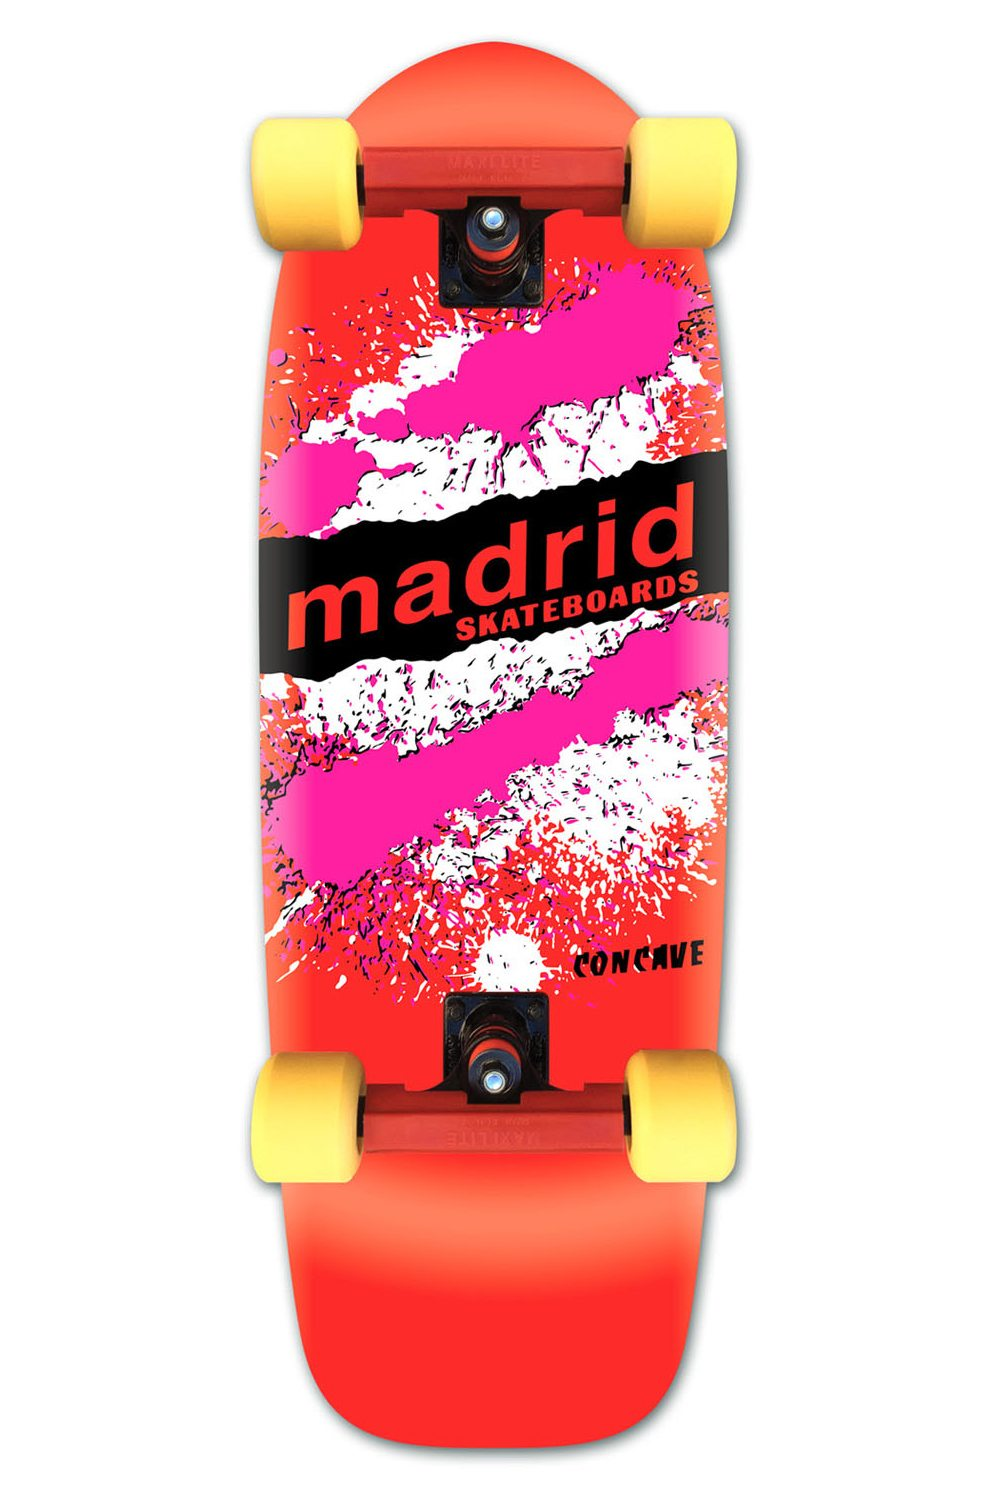 Stranger Things 2 Max Official ReplicaMadrid Skateboards - New Stranger Things Season 2 Merchandise on the Way as BoxLunch Teams with Netflix